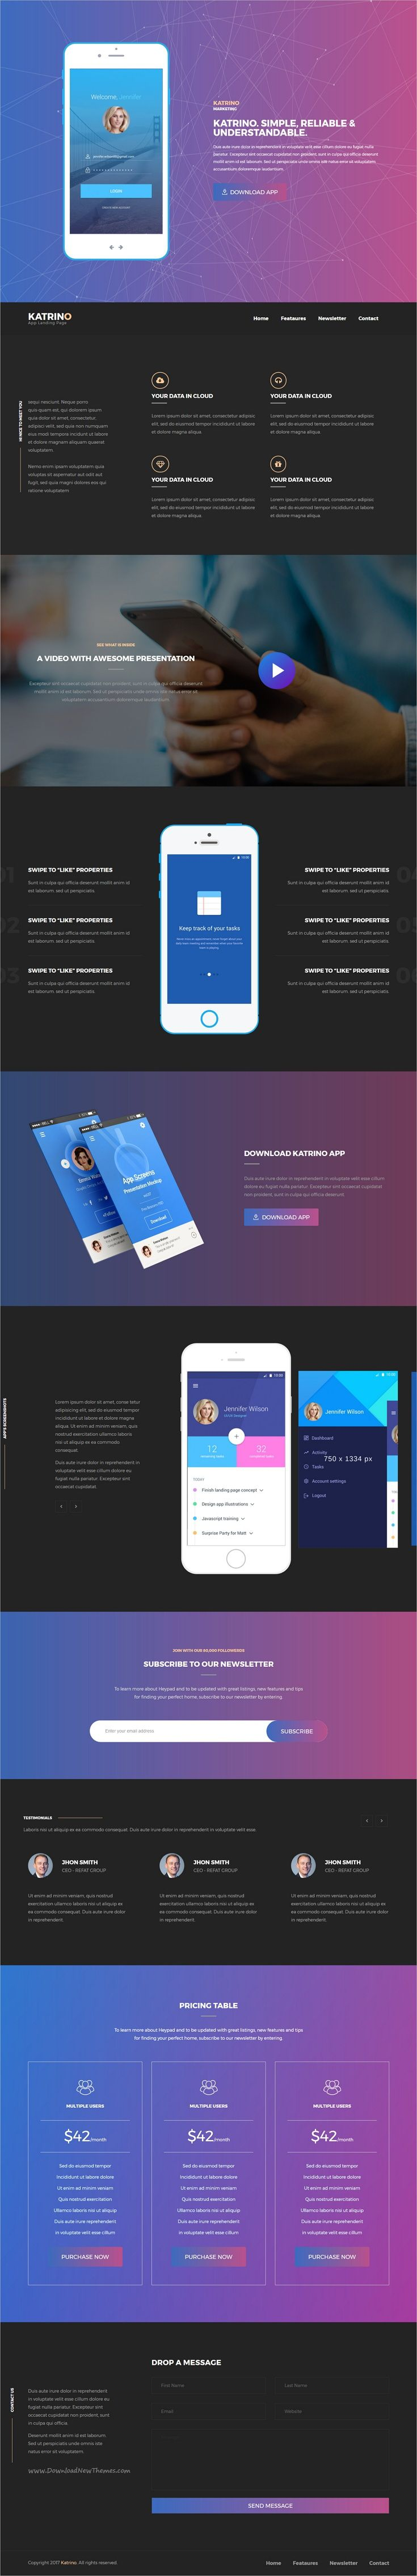 Katrino is a clean and modern #Bootstrap #App #Landing #Page #Template with  8 different homepage styles and color variations download now➩ https://themeforest.net/item/katrino-responsive-app-landing-page/18962794?ref=Datasata